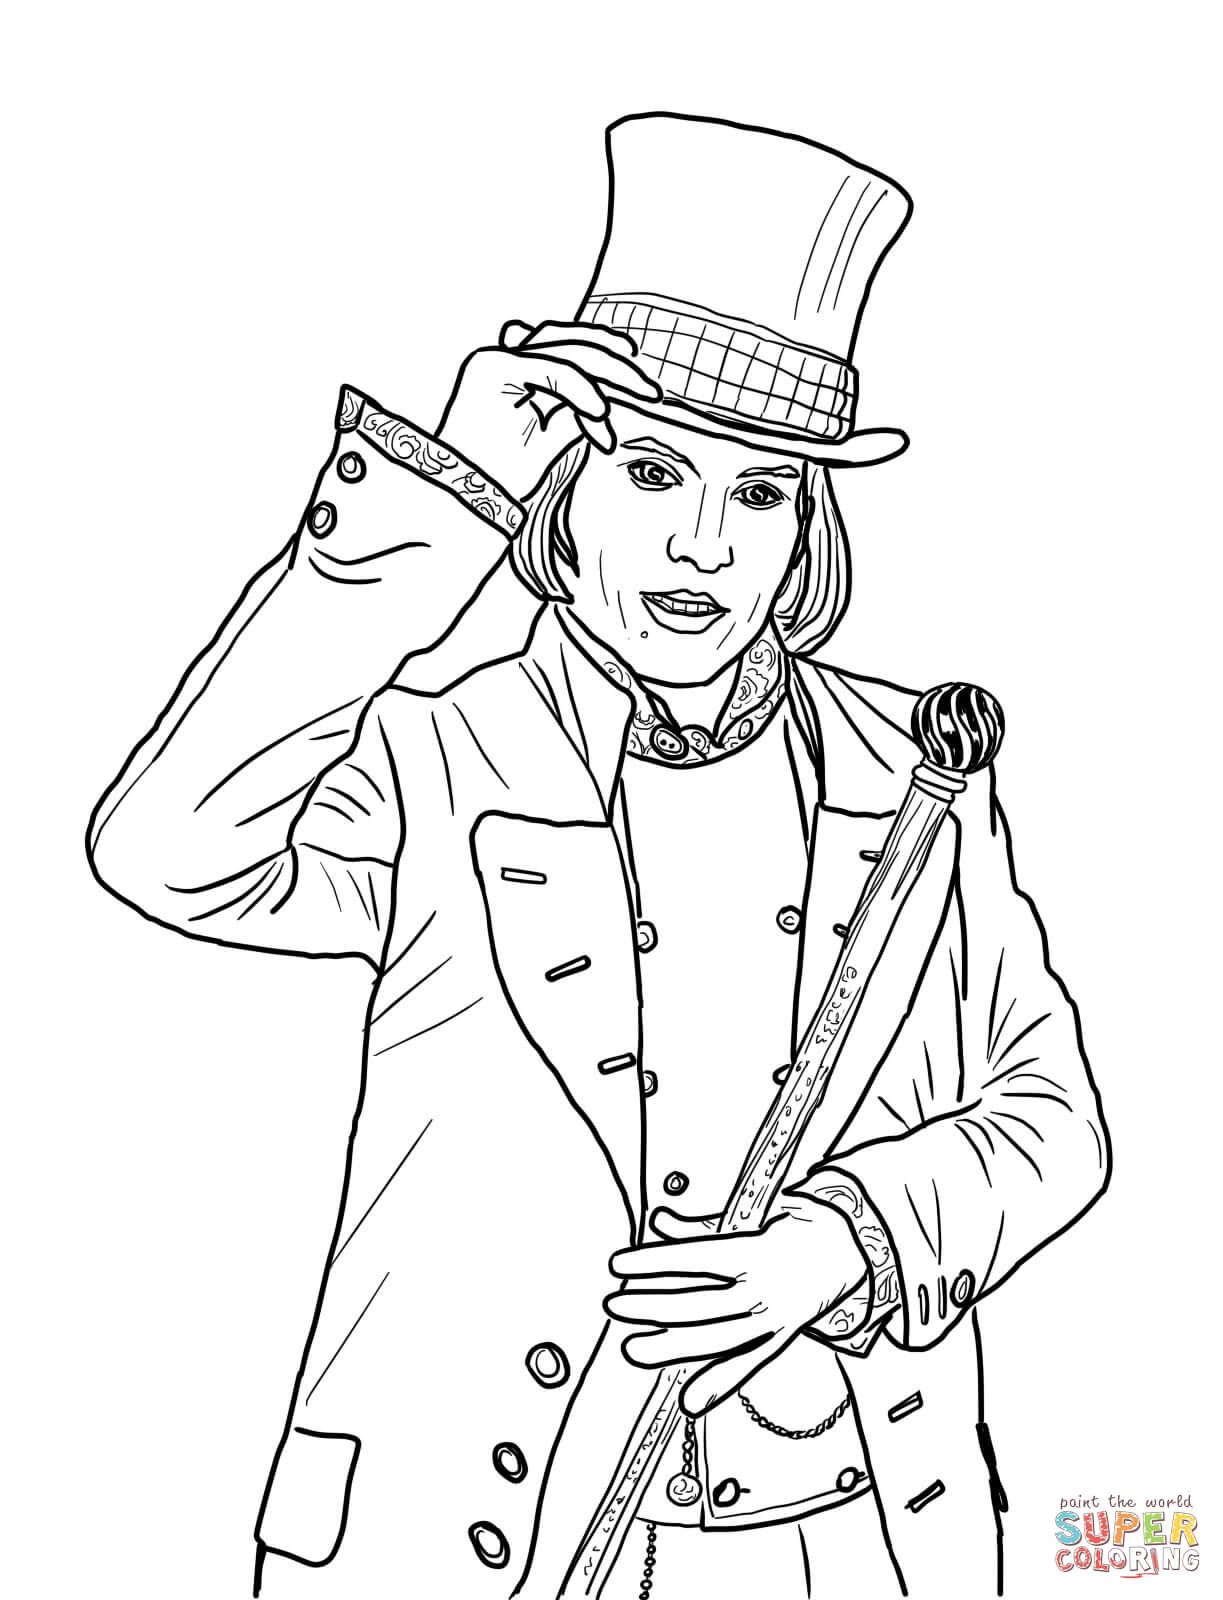 willy wonka and the chocolate factory coloring pages top 10 charlie and the chocolate factory coloring pages wonka and willy chocolate factory the coloring pages